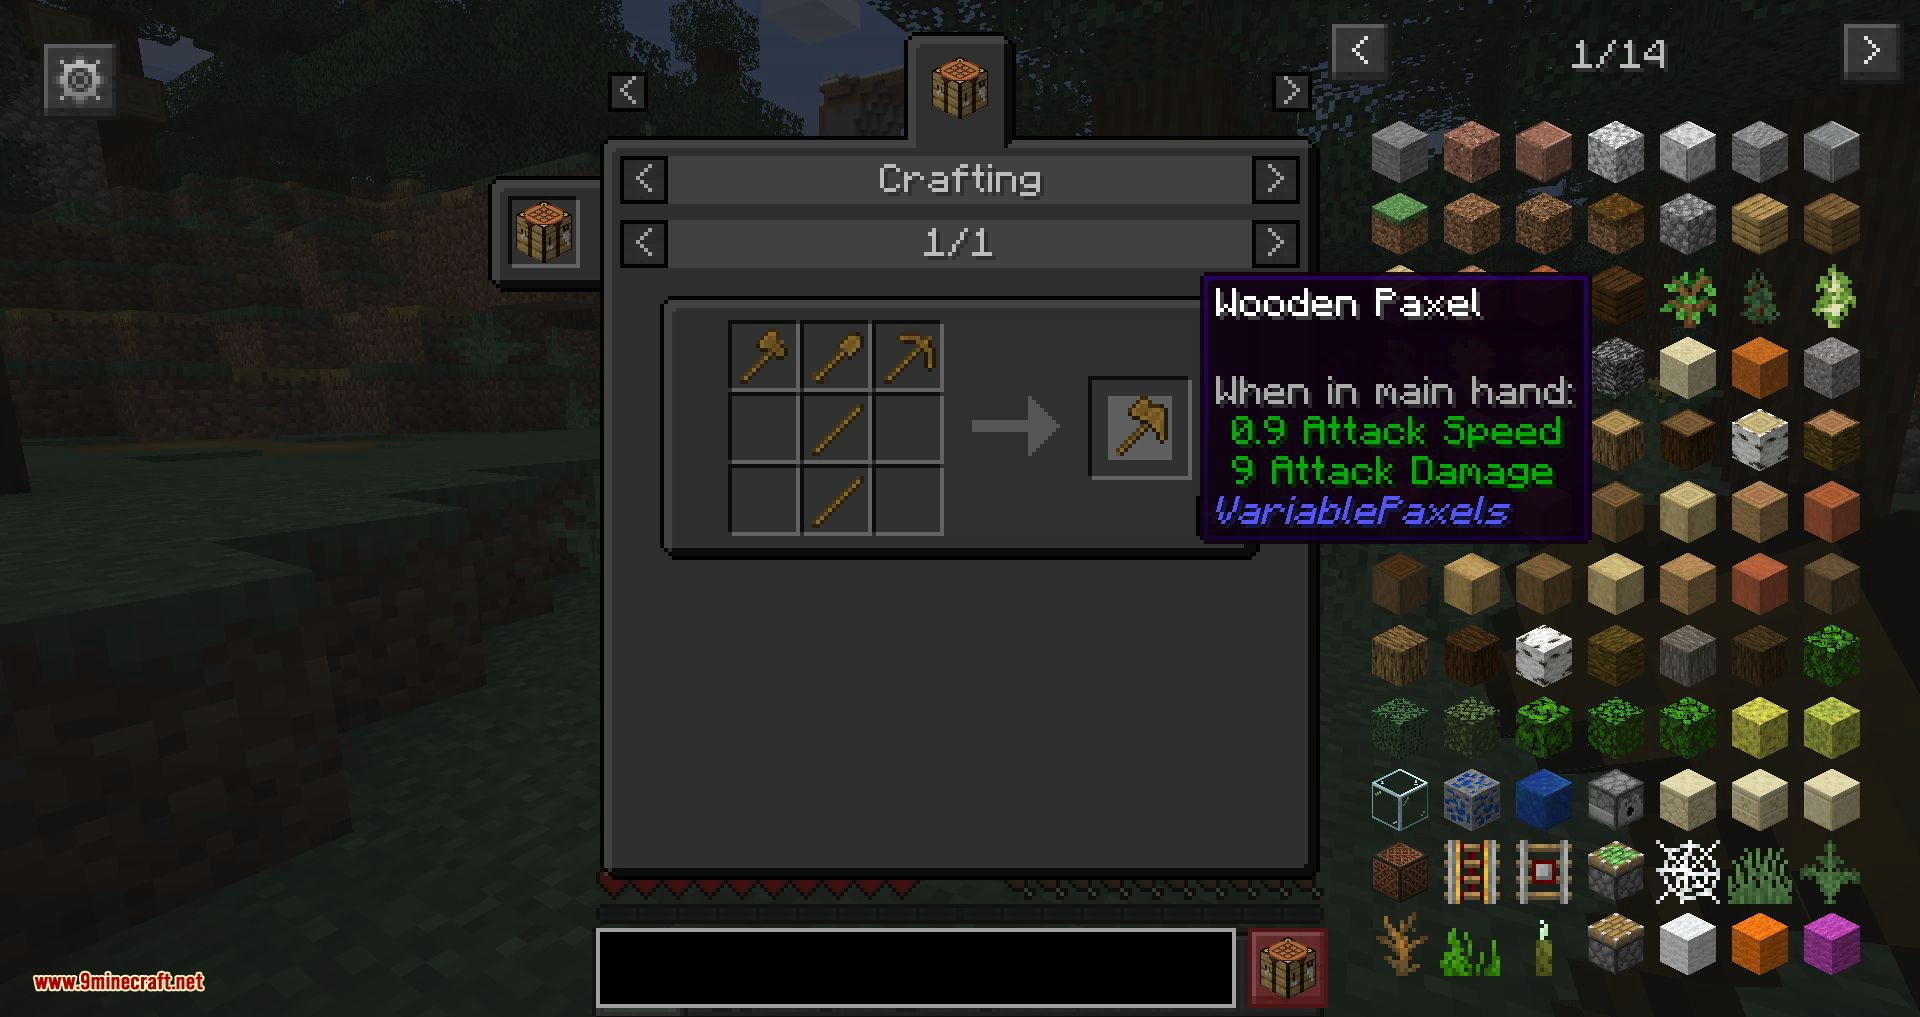 Variable Paxels mod for minecraft 06